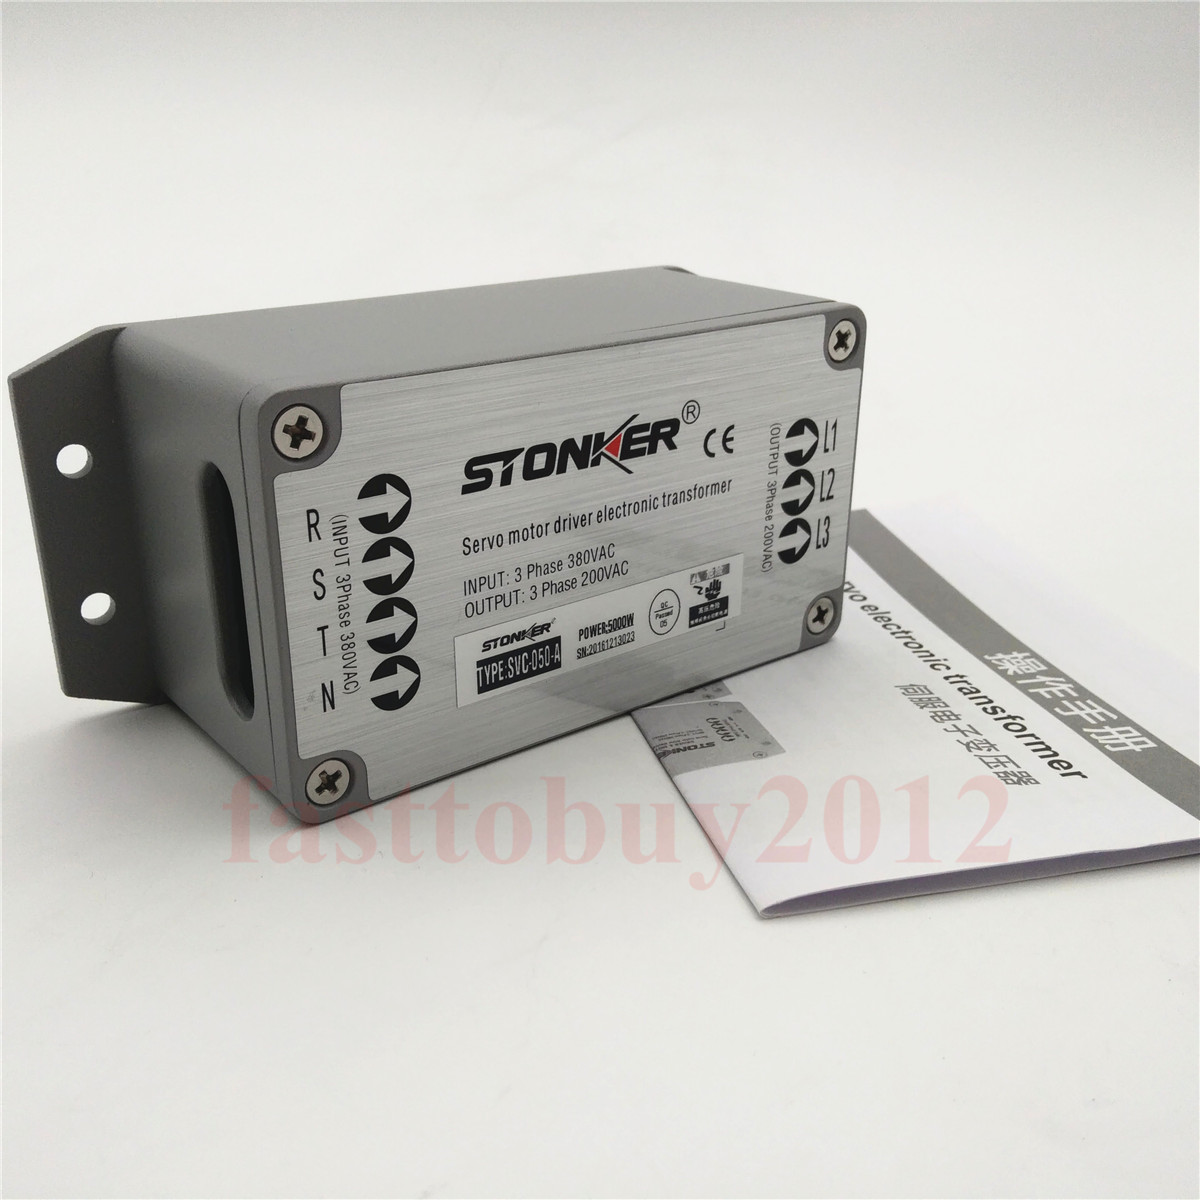 Details about 380V to 220V Electronic Transformer for 5KW Servo Drive Power  Supply 3PH Stonker